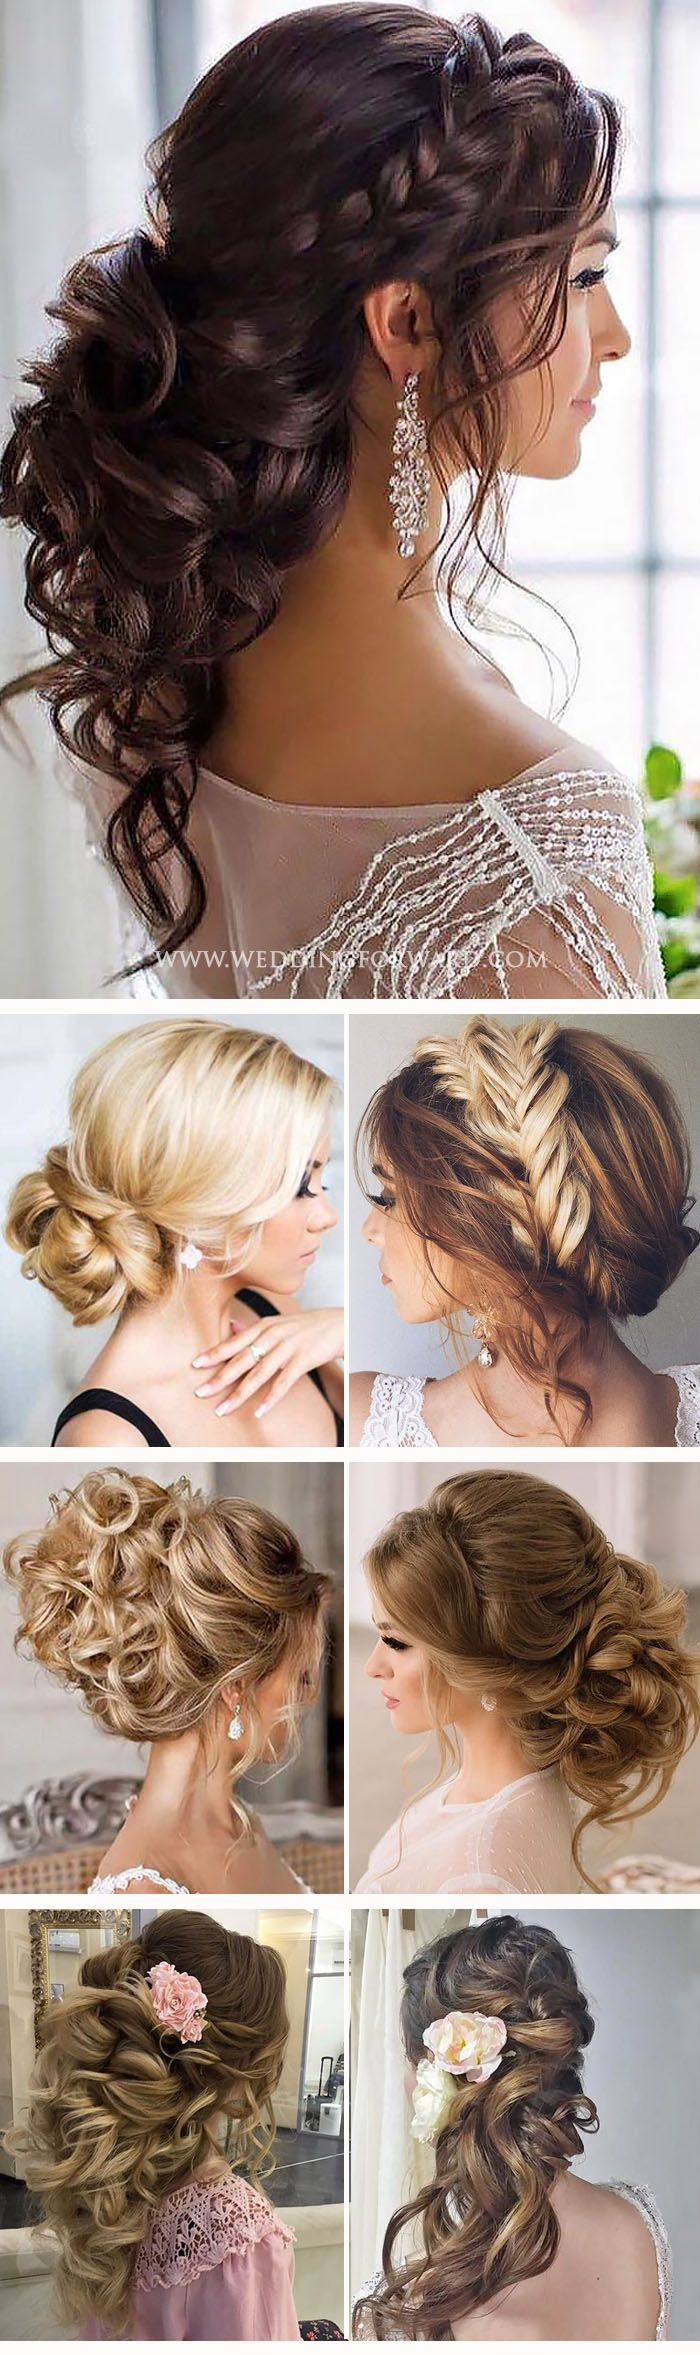 coiffure de mariage 2017 killer swept back wedding hairstyles if you are not sure which. Black Bedroom Furniture Sets. Home Design Ideas